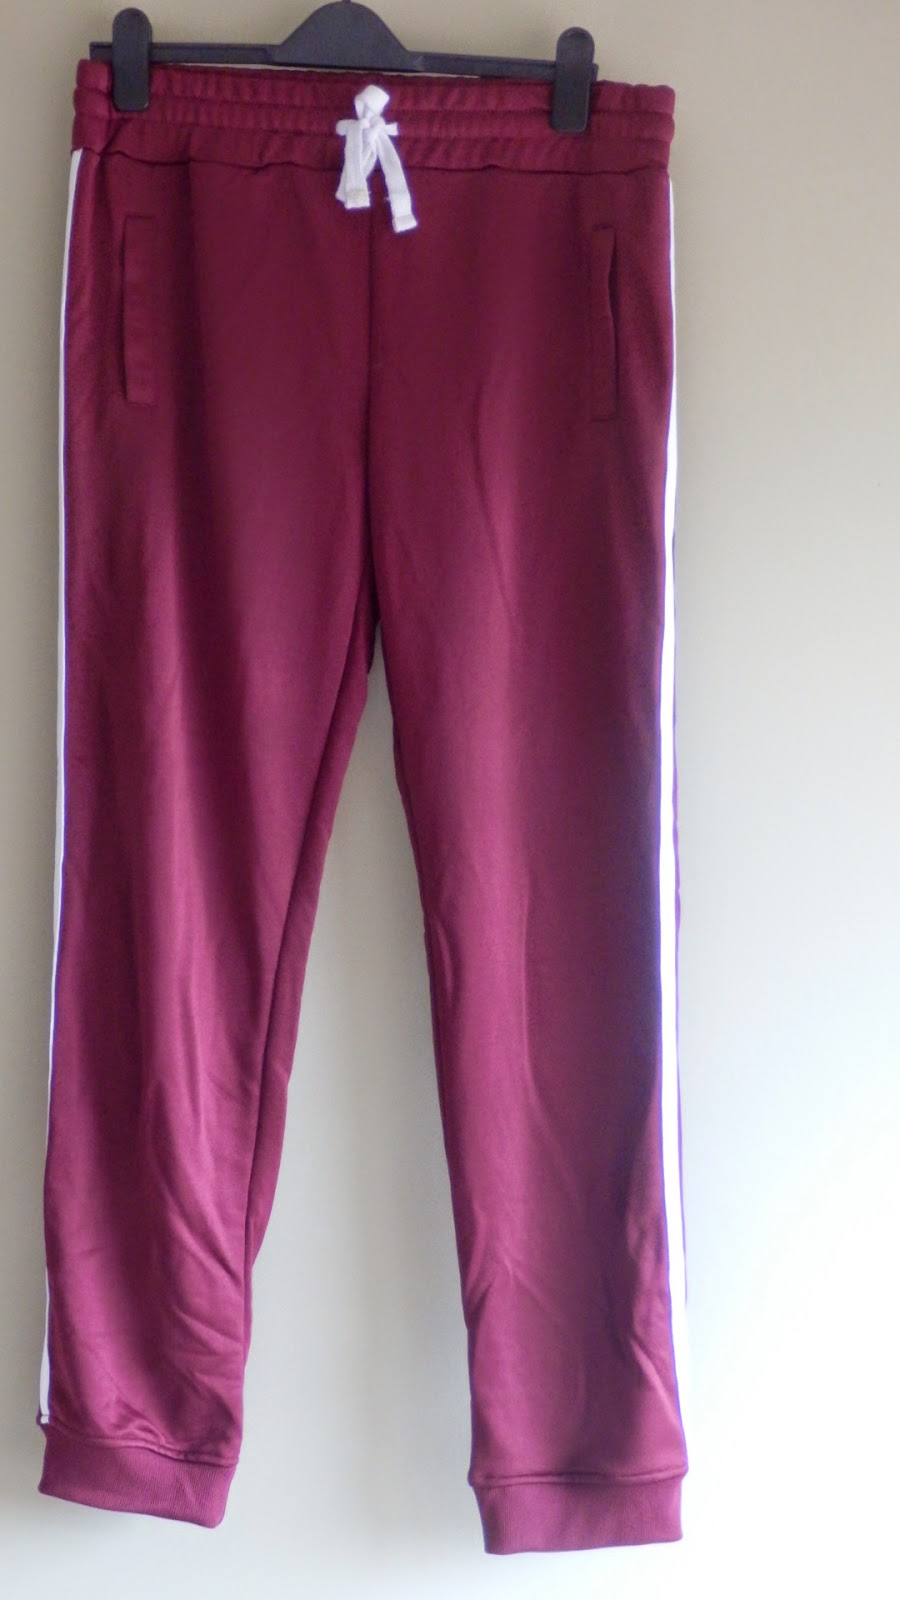 Primark burgundy retro jogging bottoms